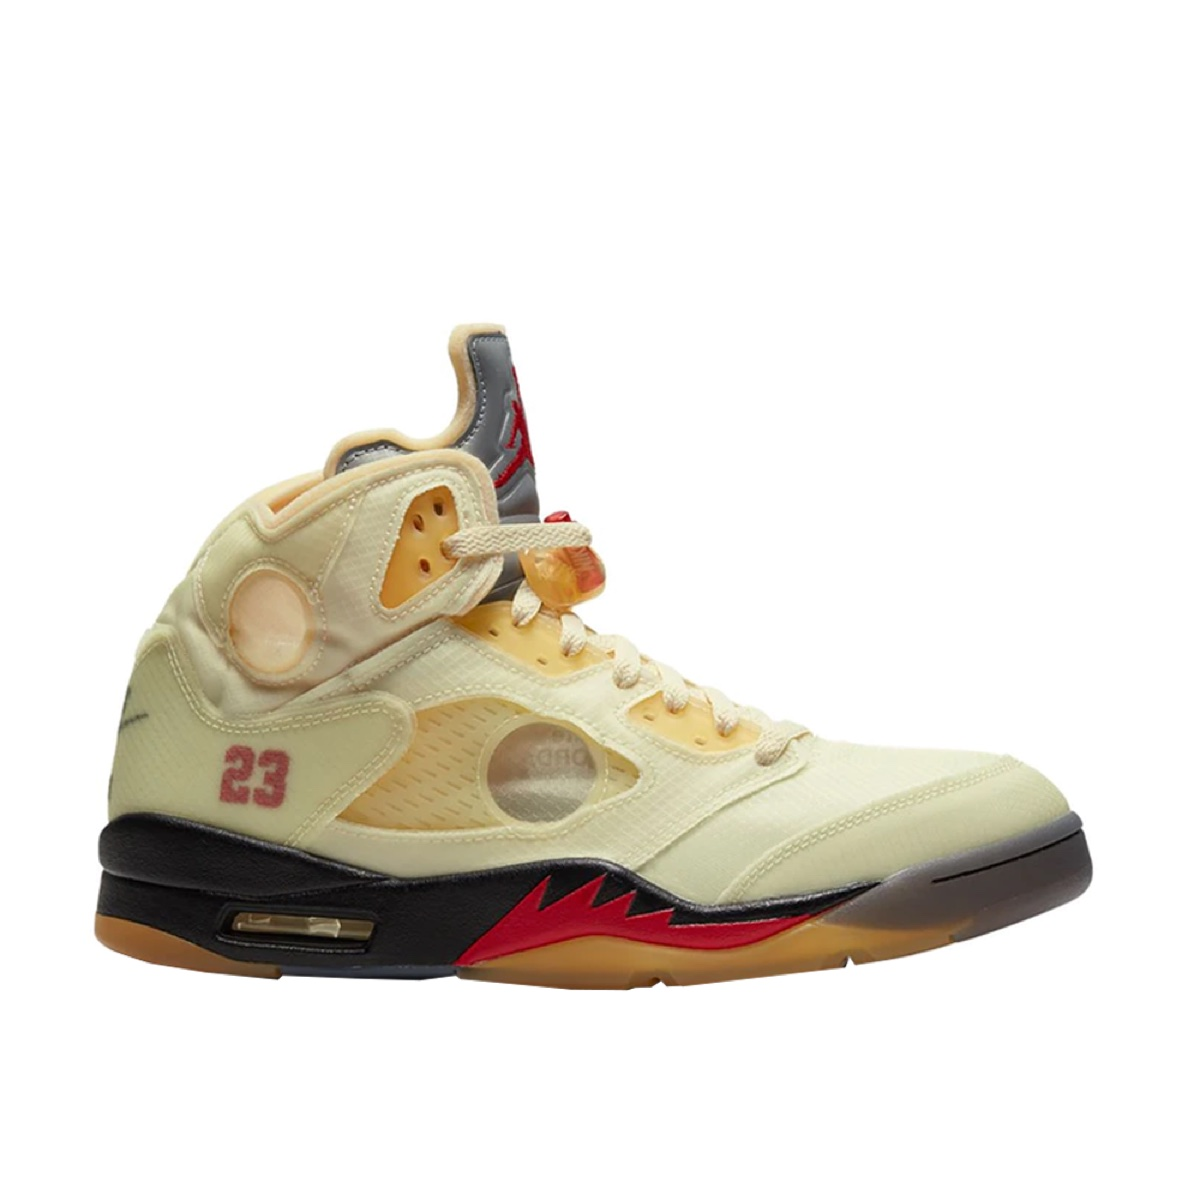 Jordan 5 Retro Off White Sail